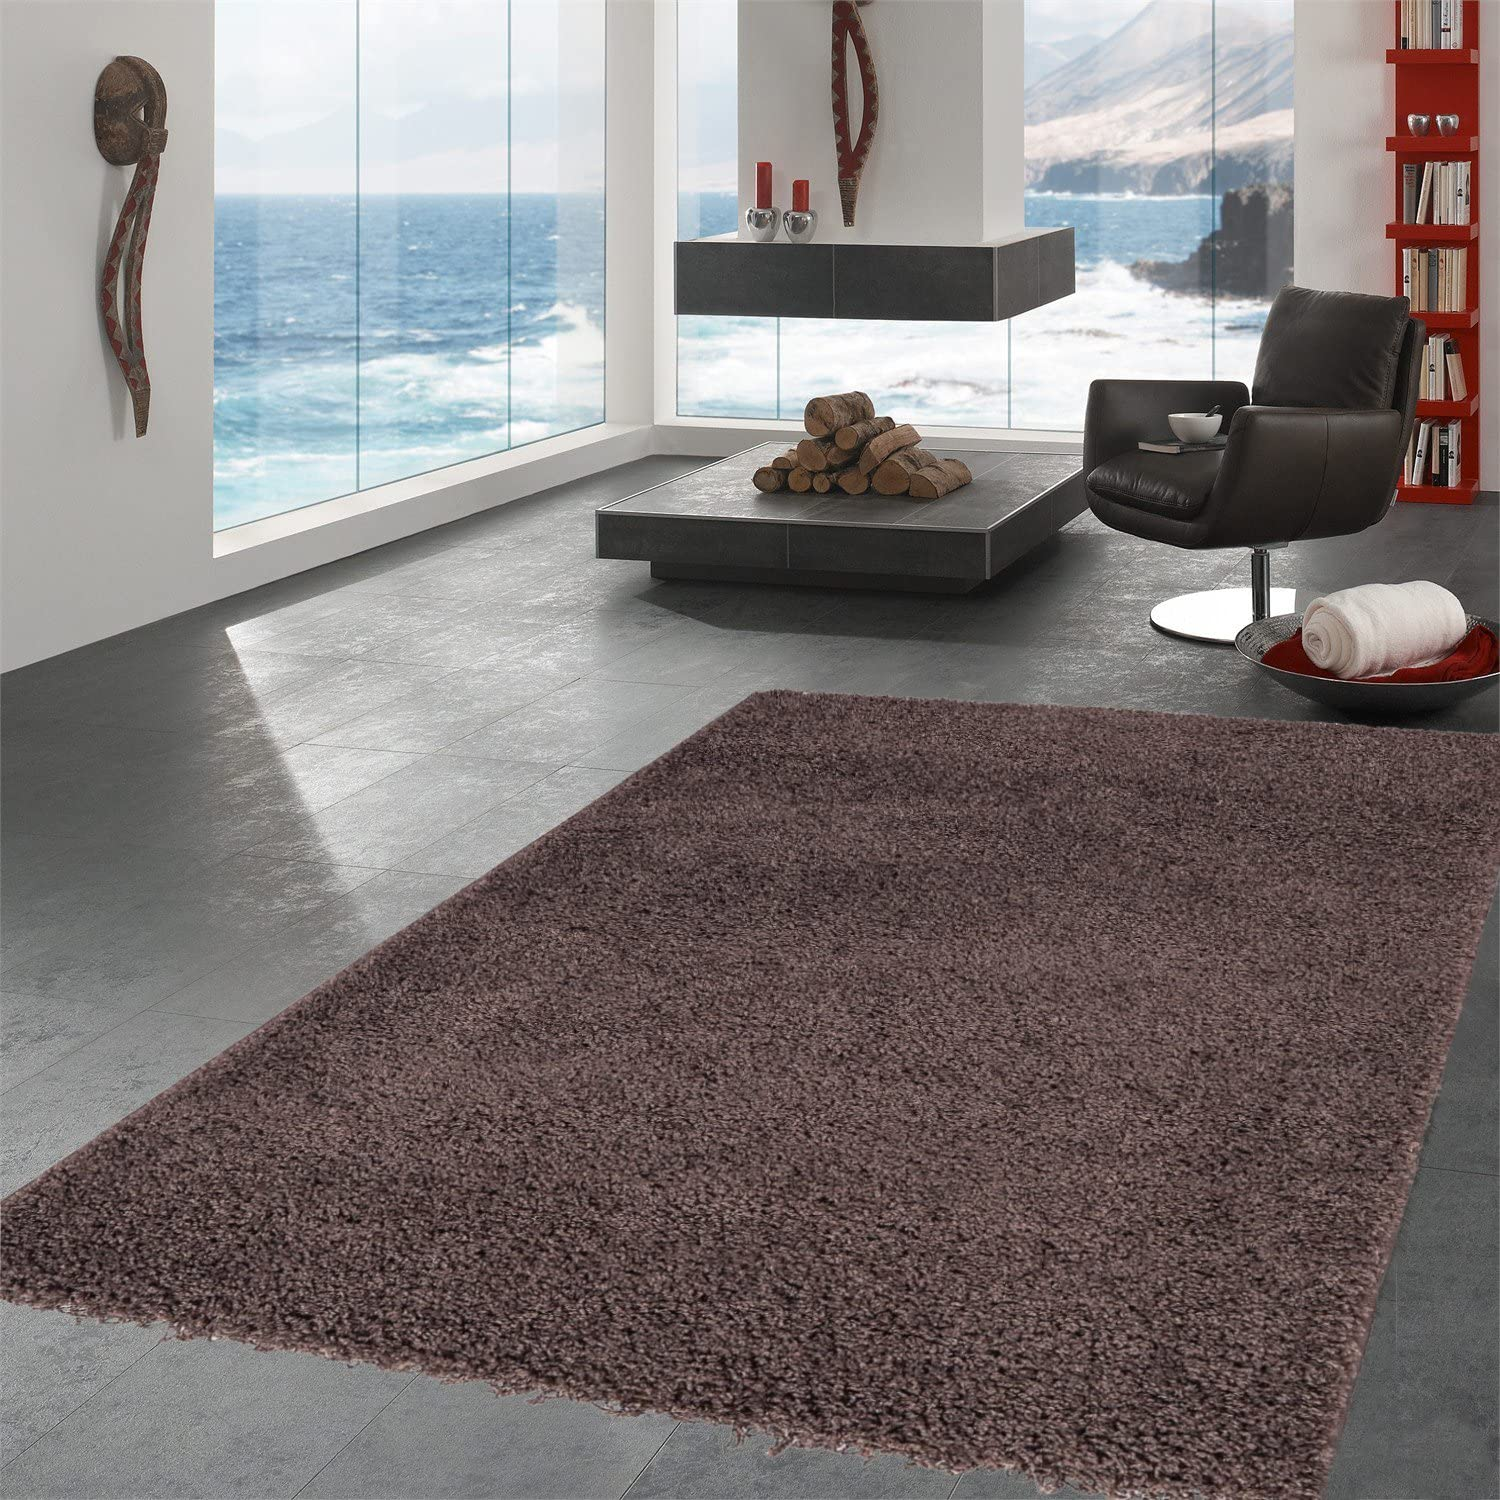 Ottomanson Soft Cozy Color Solid Shag Rug Contemporary Living and Bedroom Soft Shaggy Area Rug Kids Rugs